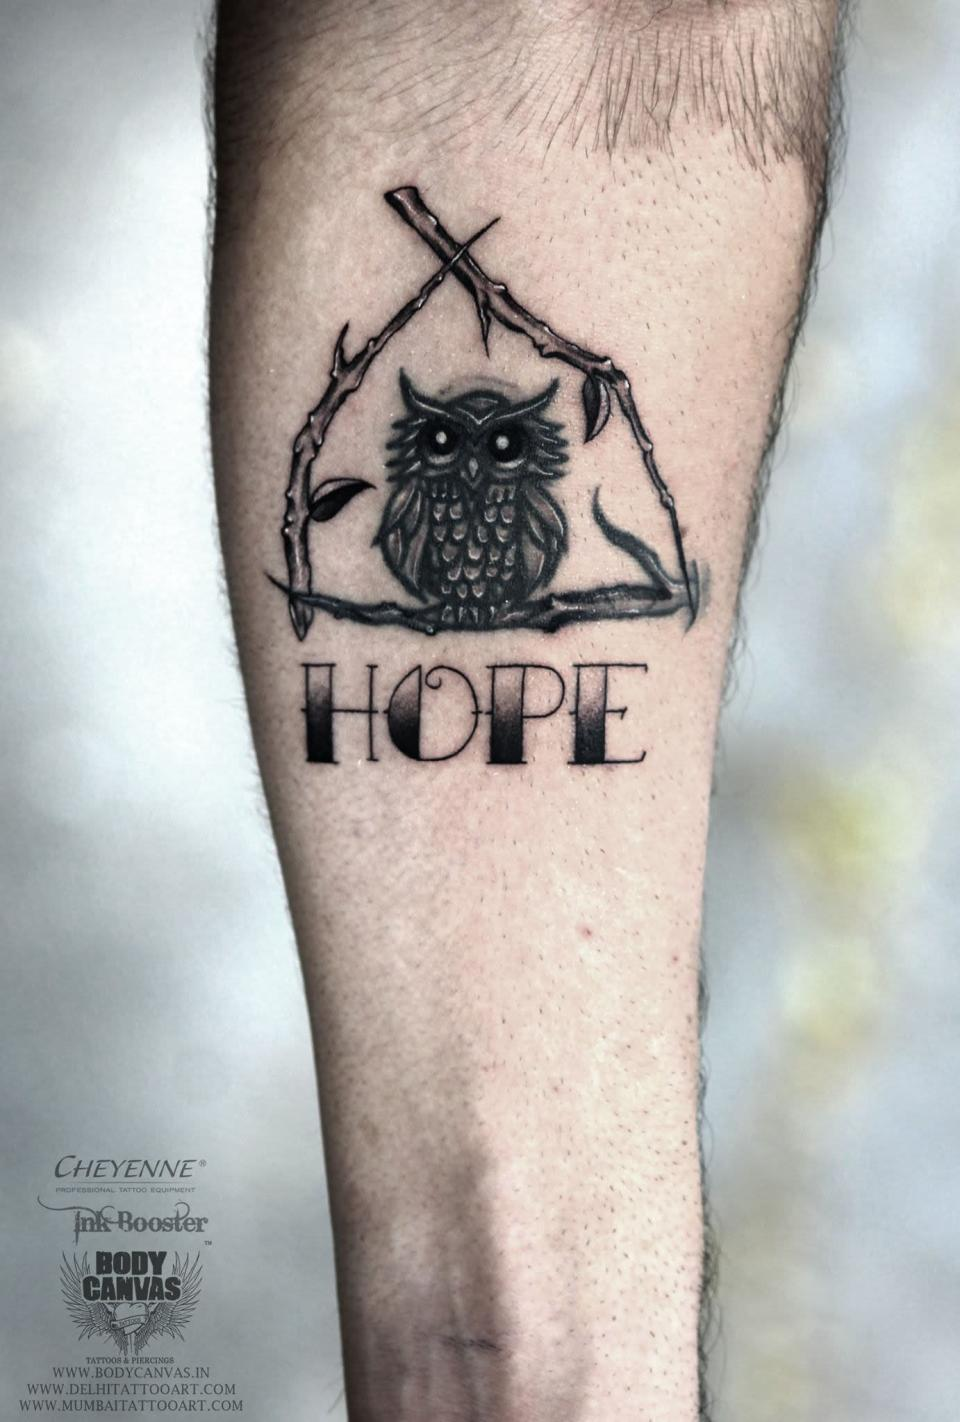 <p>Many people who are starting over from a difficult phase in their lives opt for this tattoo as a mark of new beginnings, rebirth and fresh start. A swallow tattoo also denotes strength, achievement of success or freedom, winning life-threatening battle against a disease. </p>